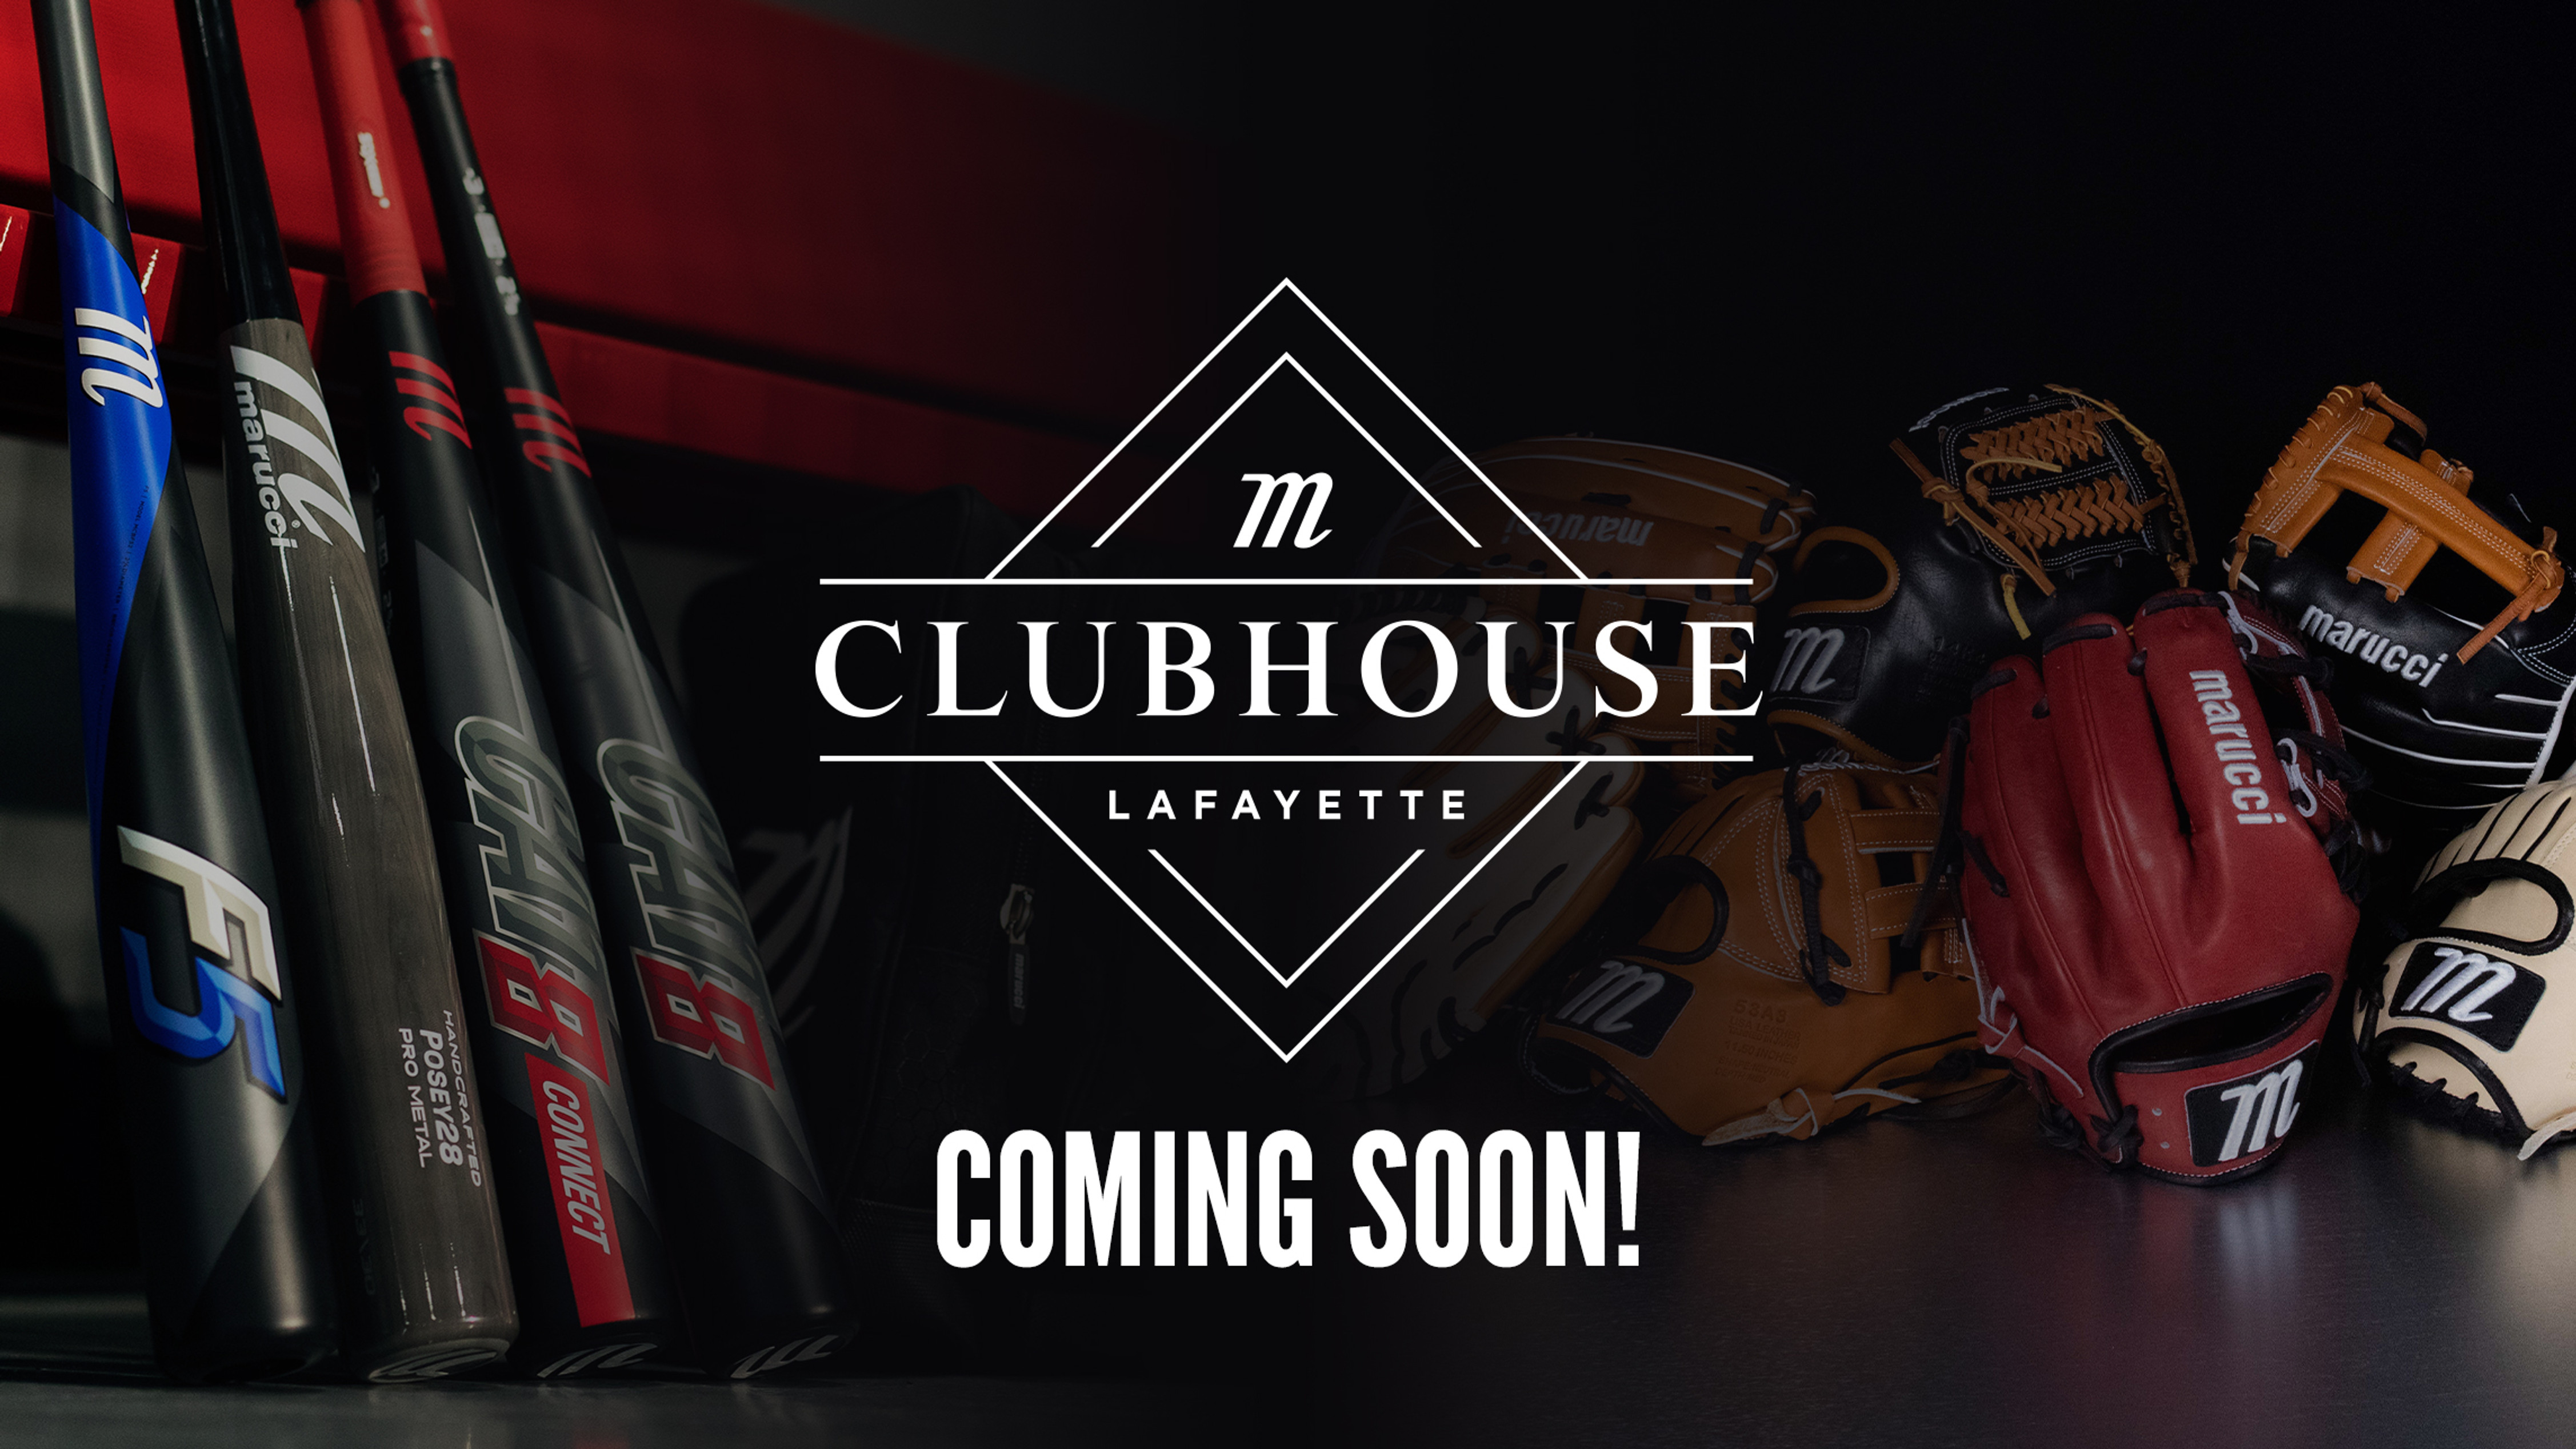 Marucci Clubhouse expanding with Lafayette location